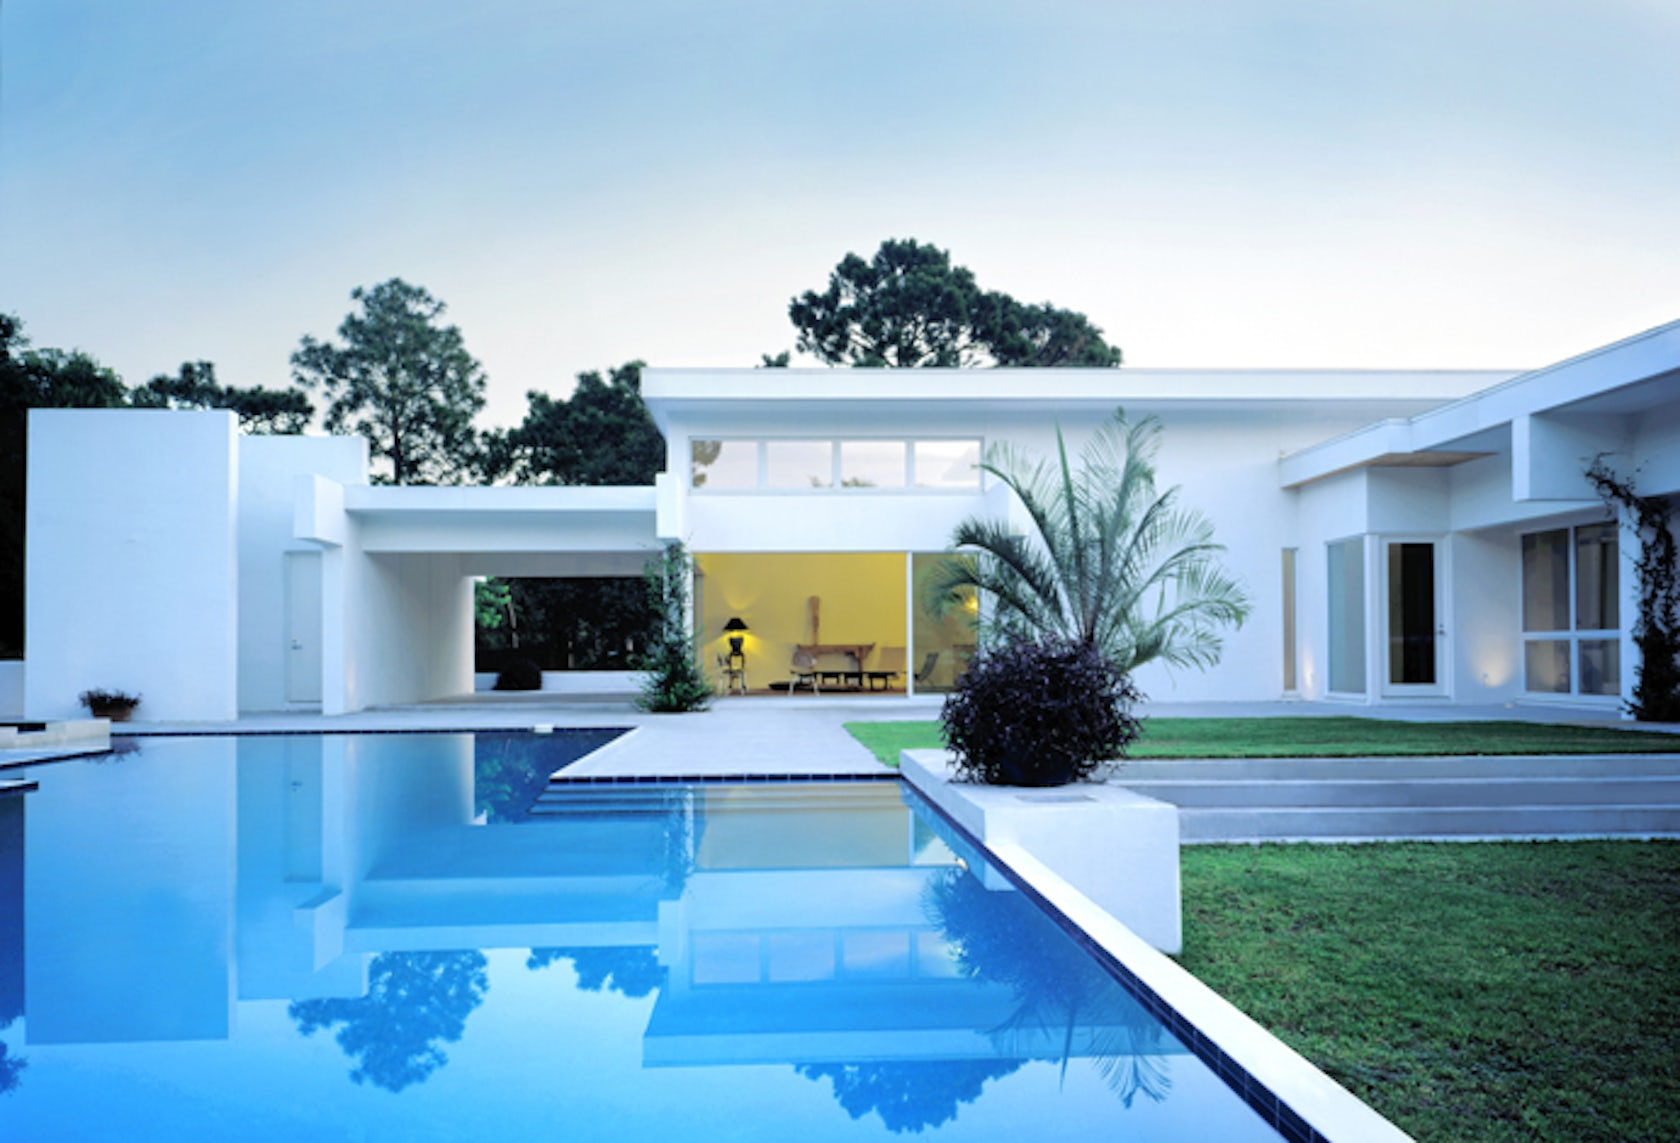 Solstice planning and architecture architizer for Architecture companies in florida